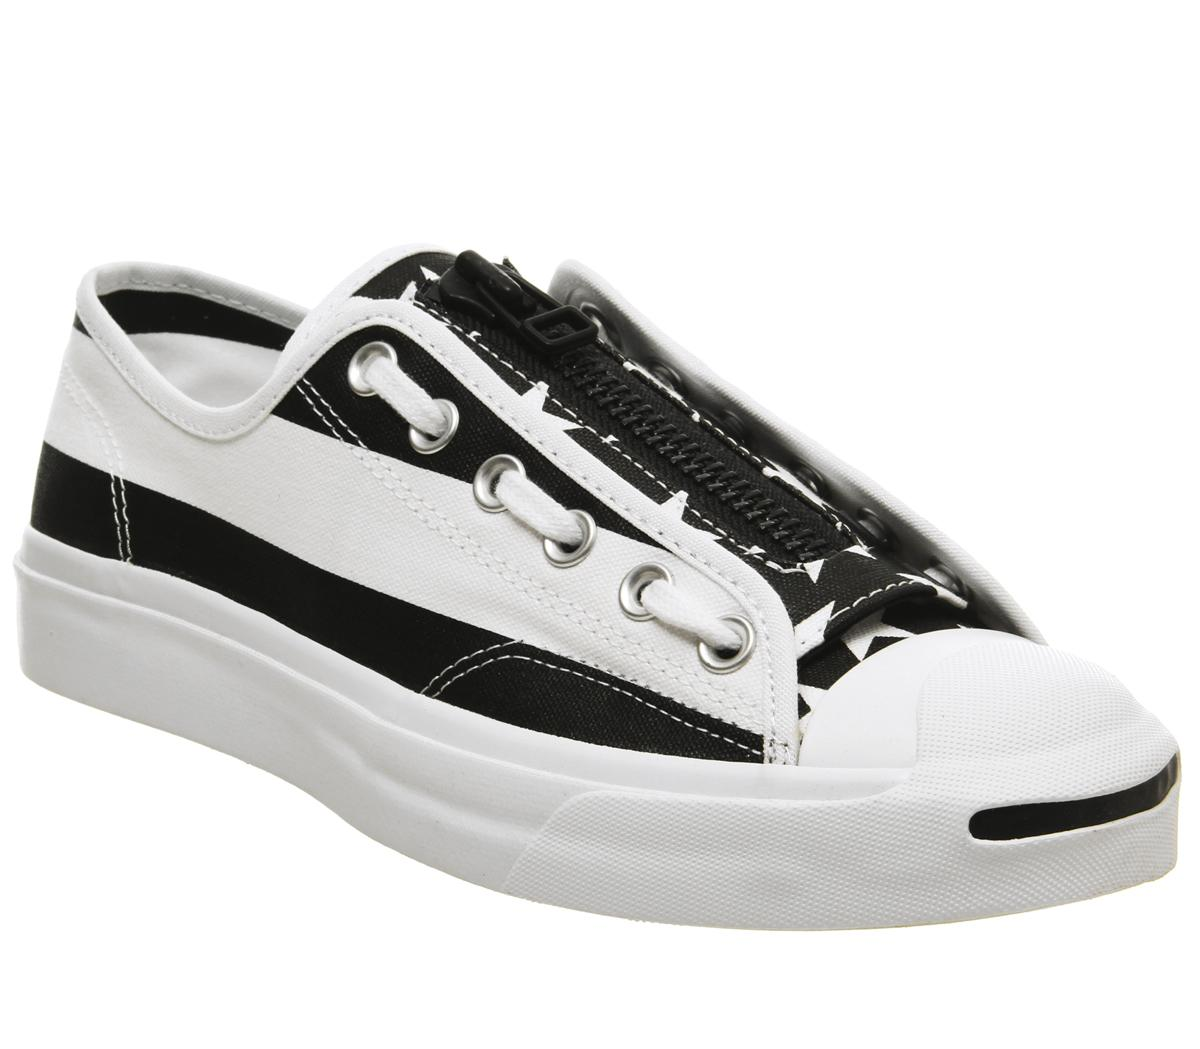 Traditionelle Stil Converse Schuhe Jack Purcell Overseas